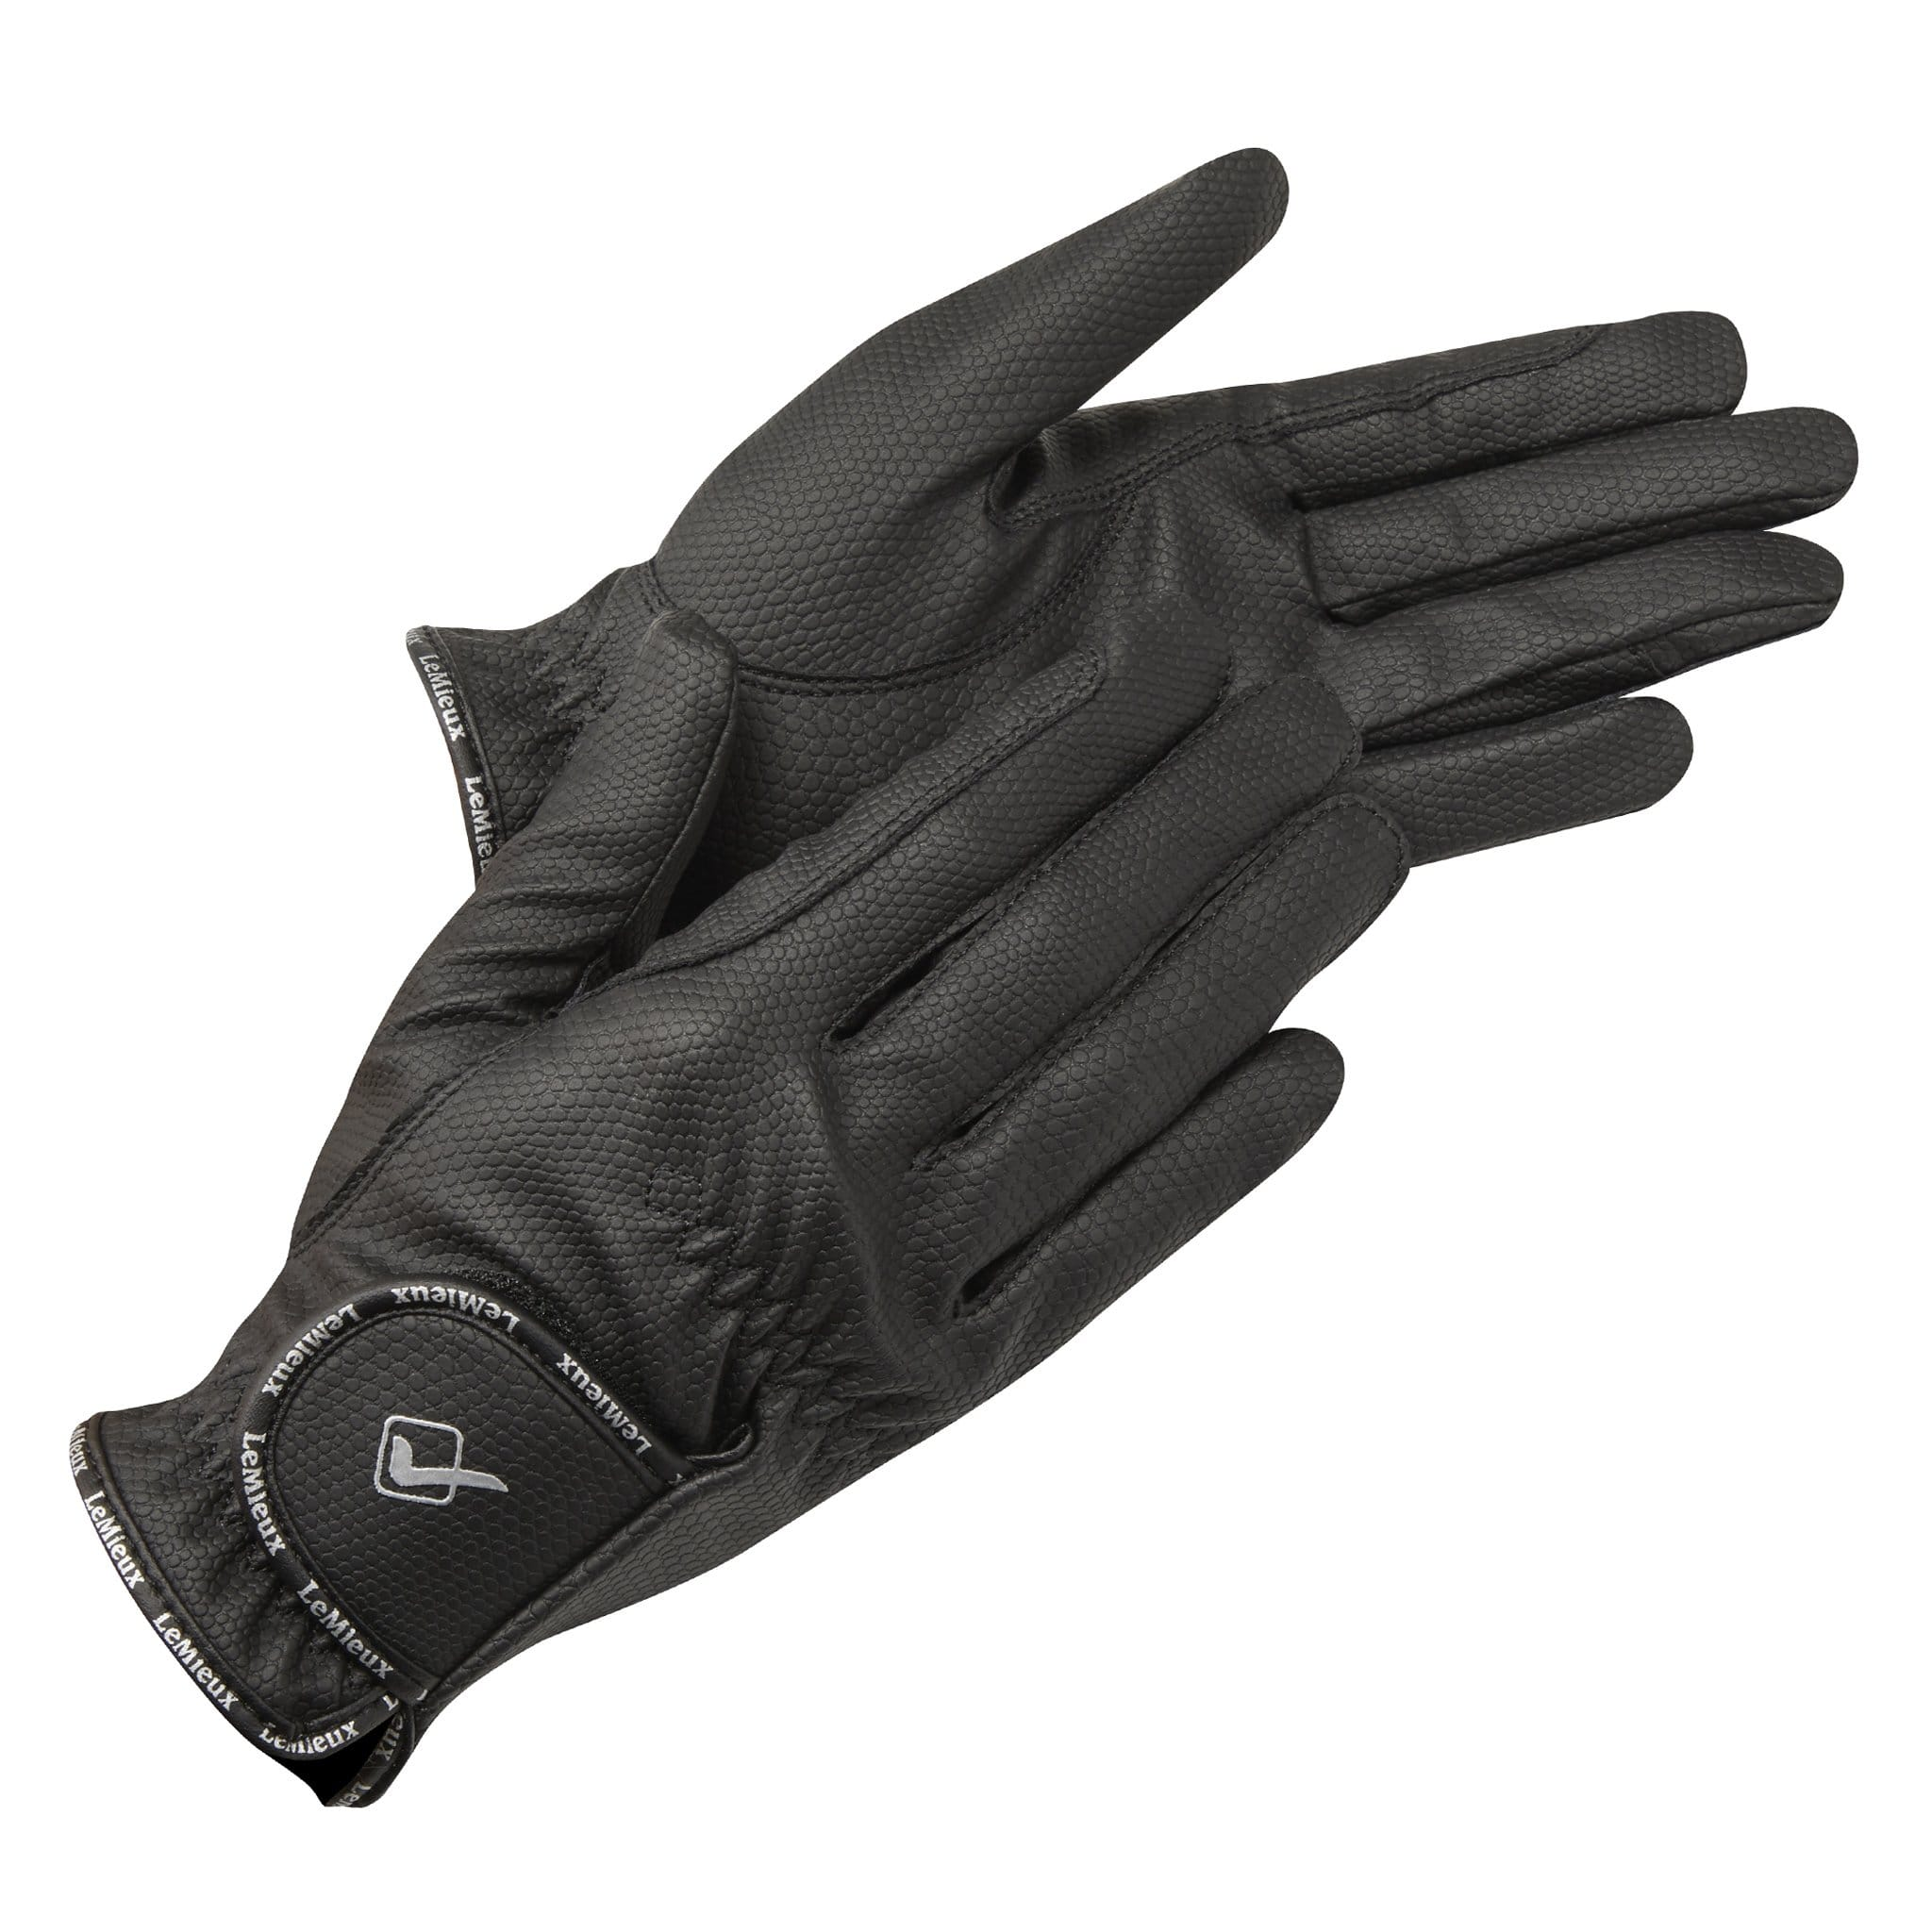 LeMieux ProTouch Classic Riding Gloves Black 5211